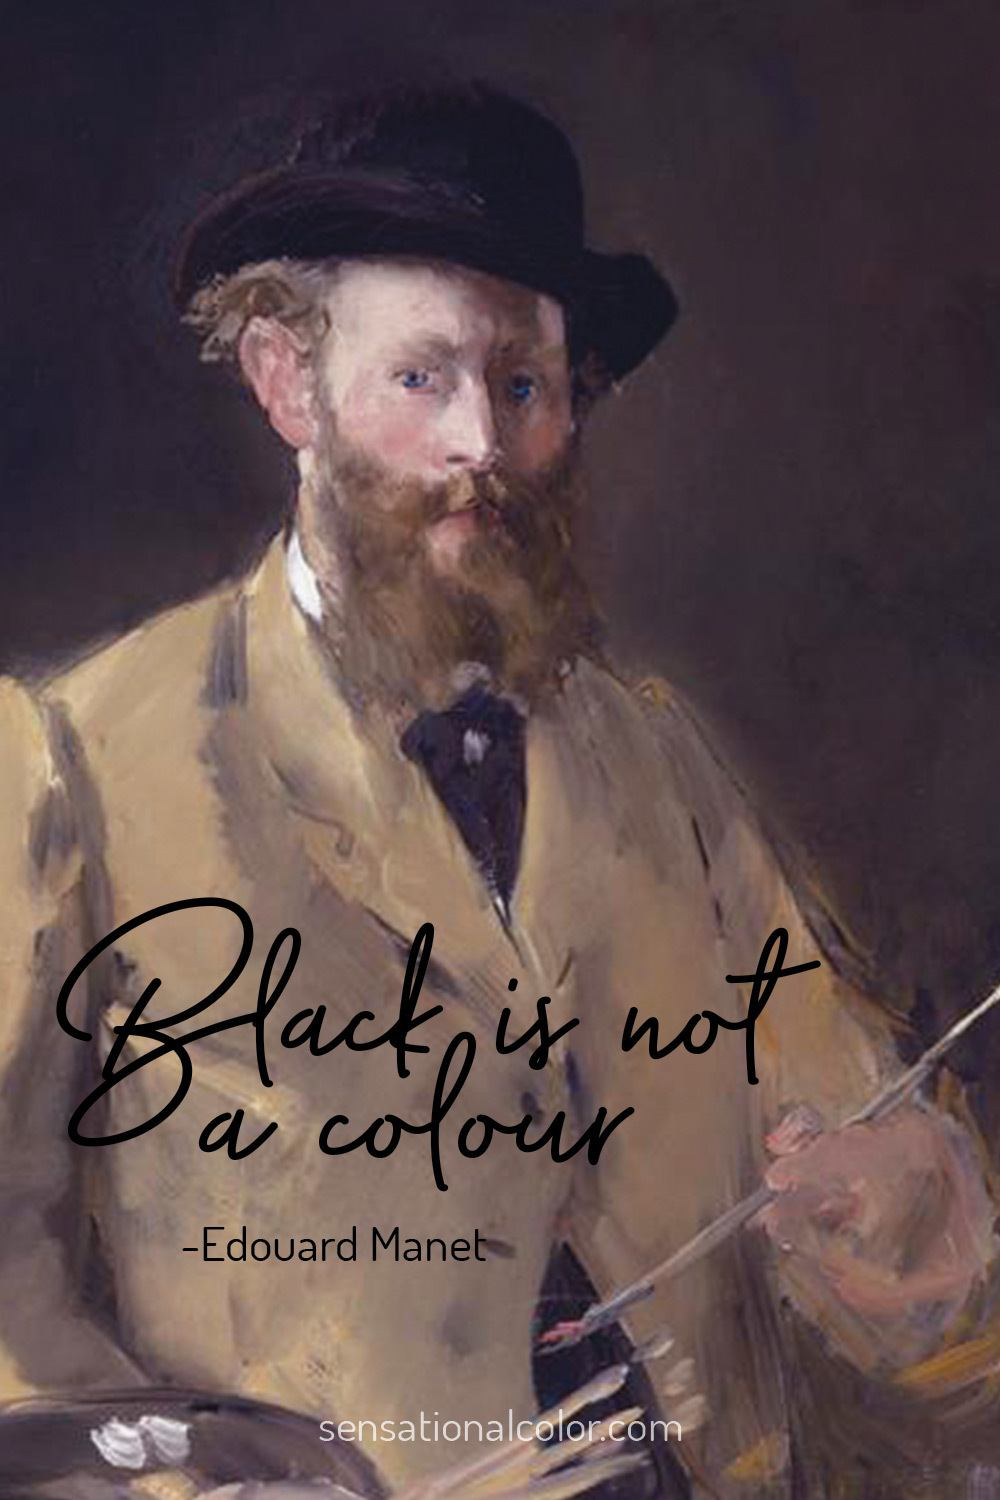 """Black is not a color.""-Edouard Manet"